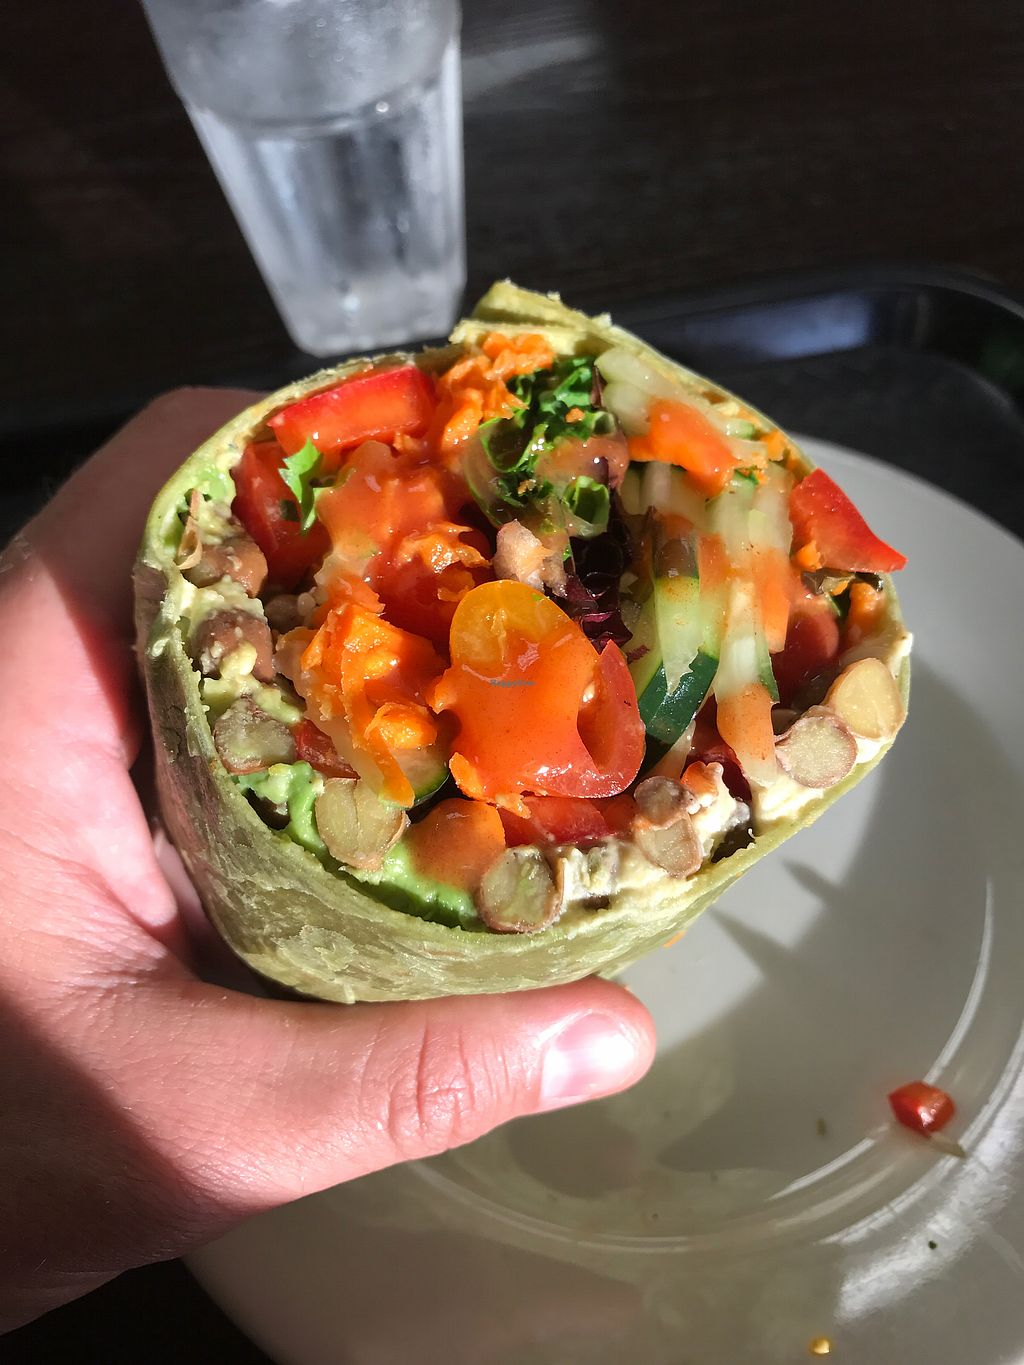 "Photo of Zest Kitchen  by <a href=""/members/profile/JimMontevecchio"">JimMontevecchio</a> <br/>Great Vege/bean/avocado wrap!  <br/> June 25, 2017  - <a href='/contact/abuse/image/94028/273160'>Report</a>"